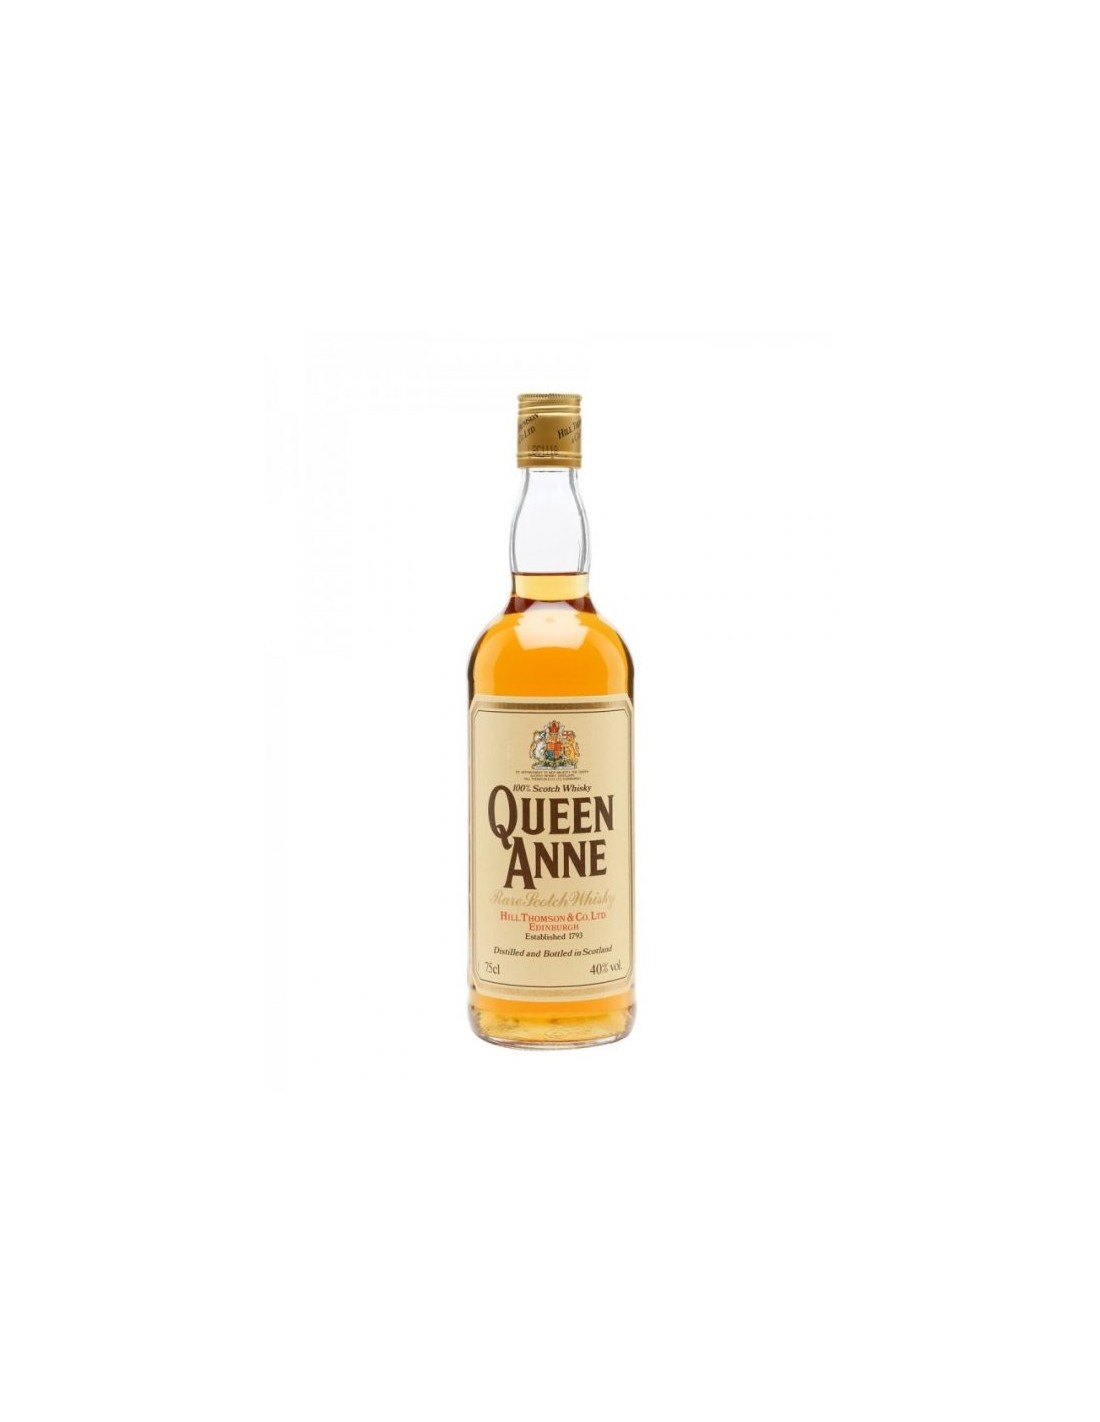 Whisky Queen Anne, 40% alc., 0.7L, Scotia